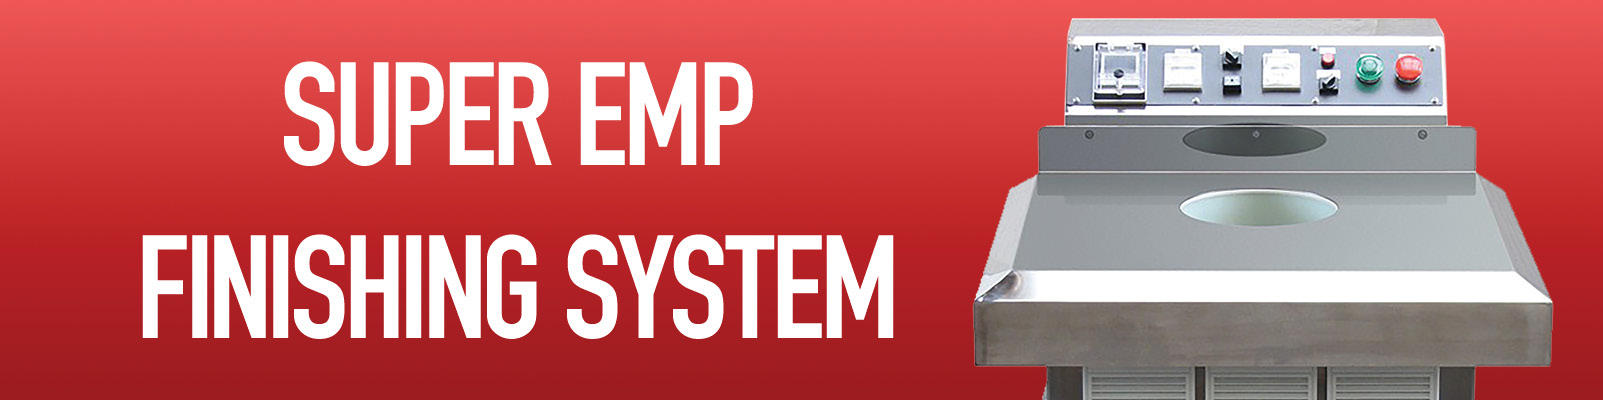 Super EMP Finishing System